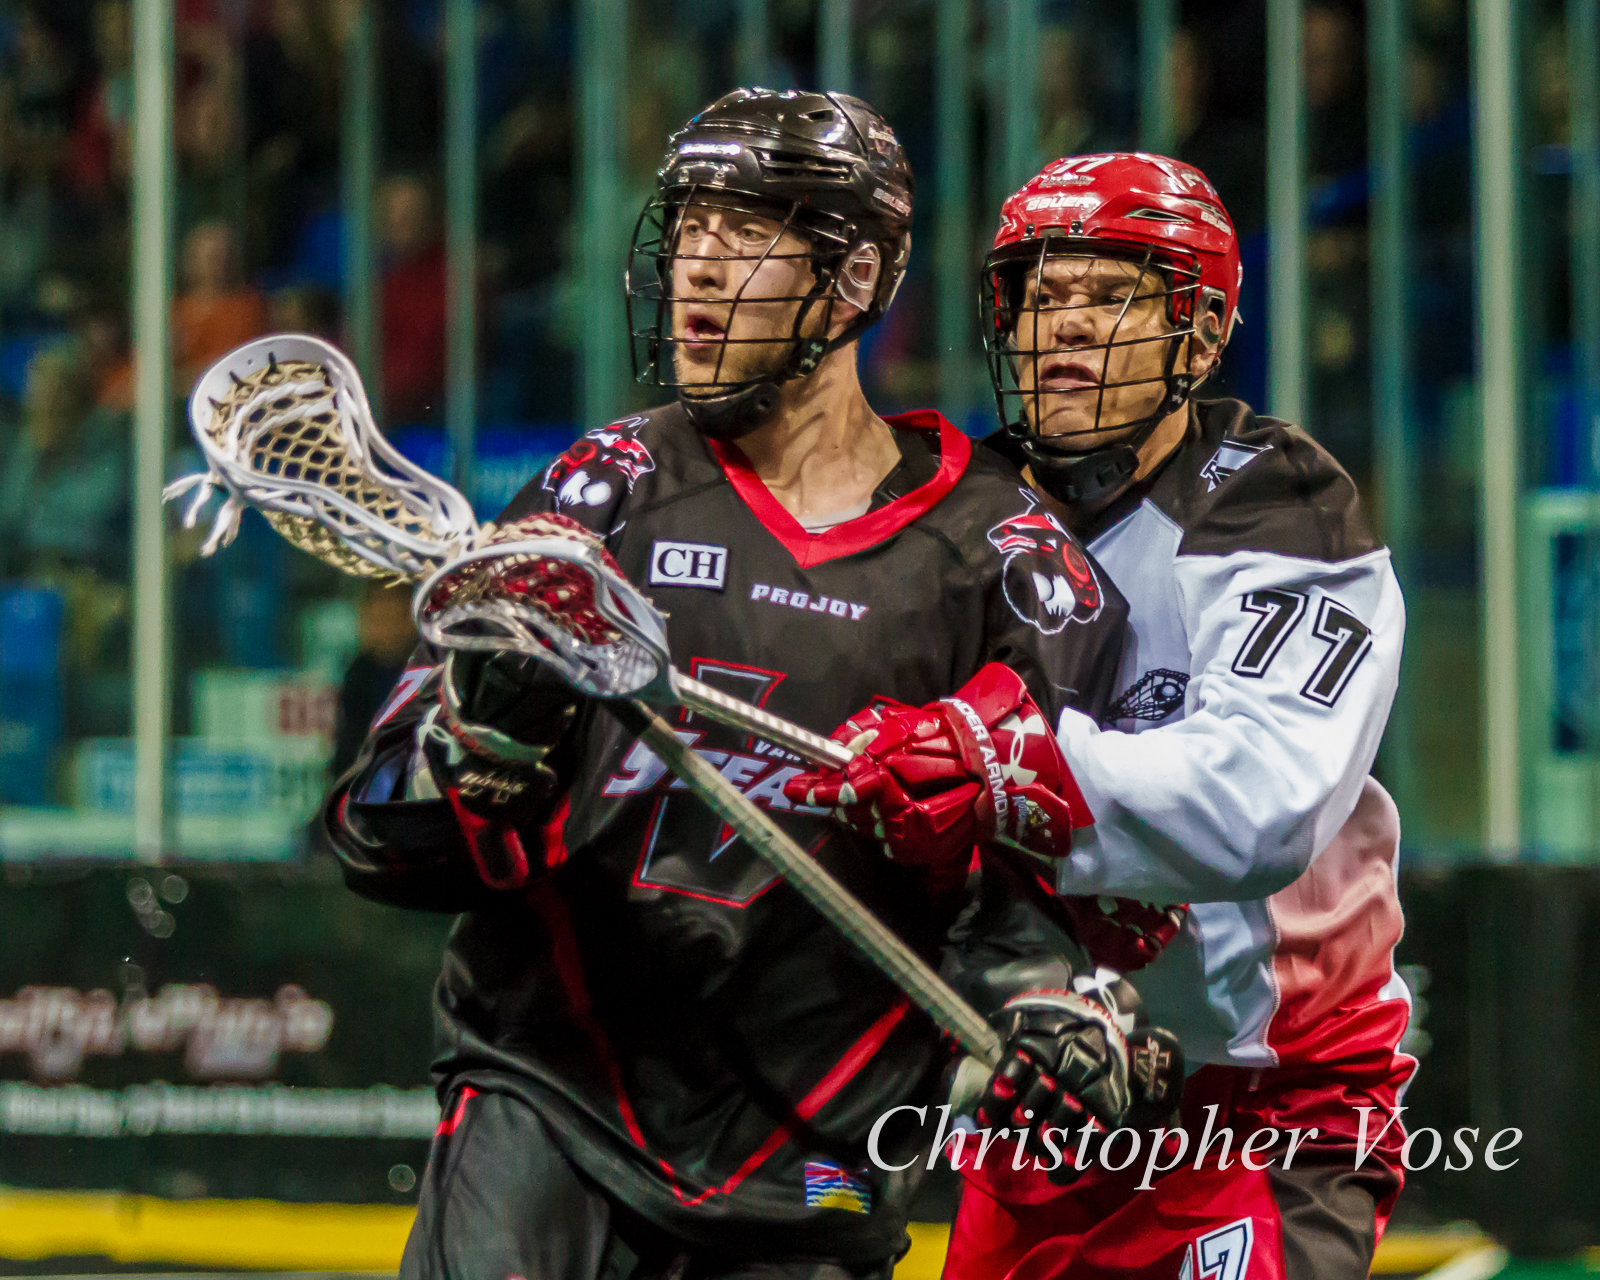 2015-02-14 Tyler Digby and Jeff Shattler.jpg